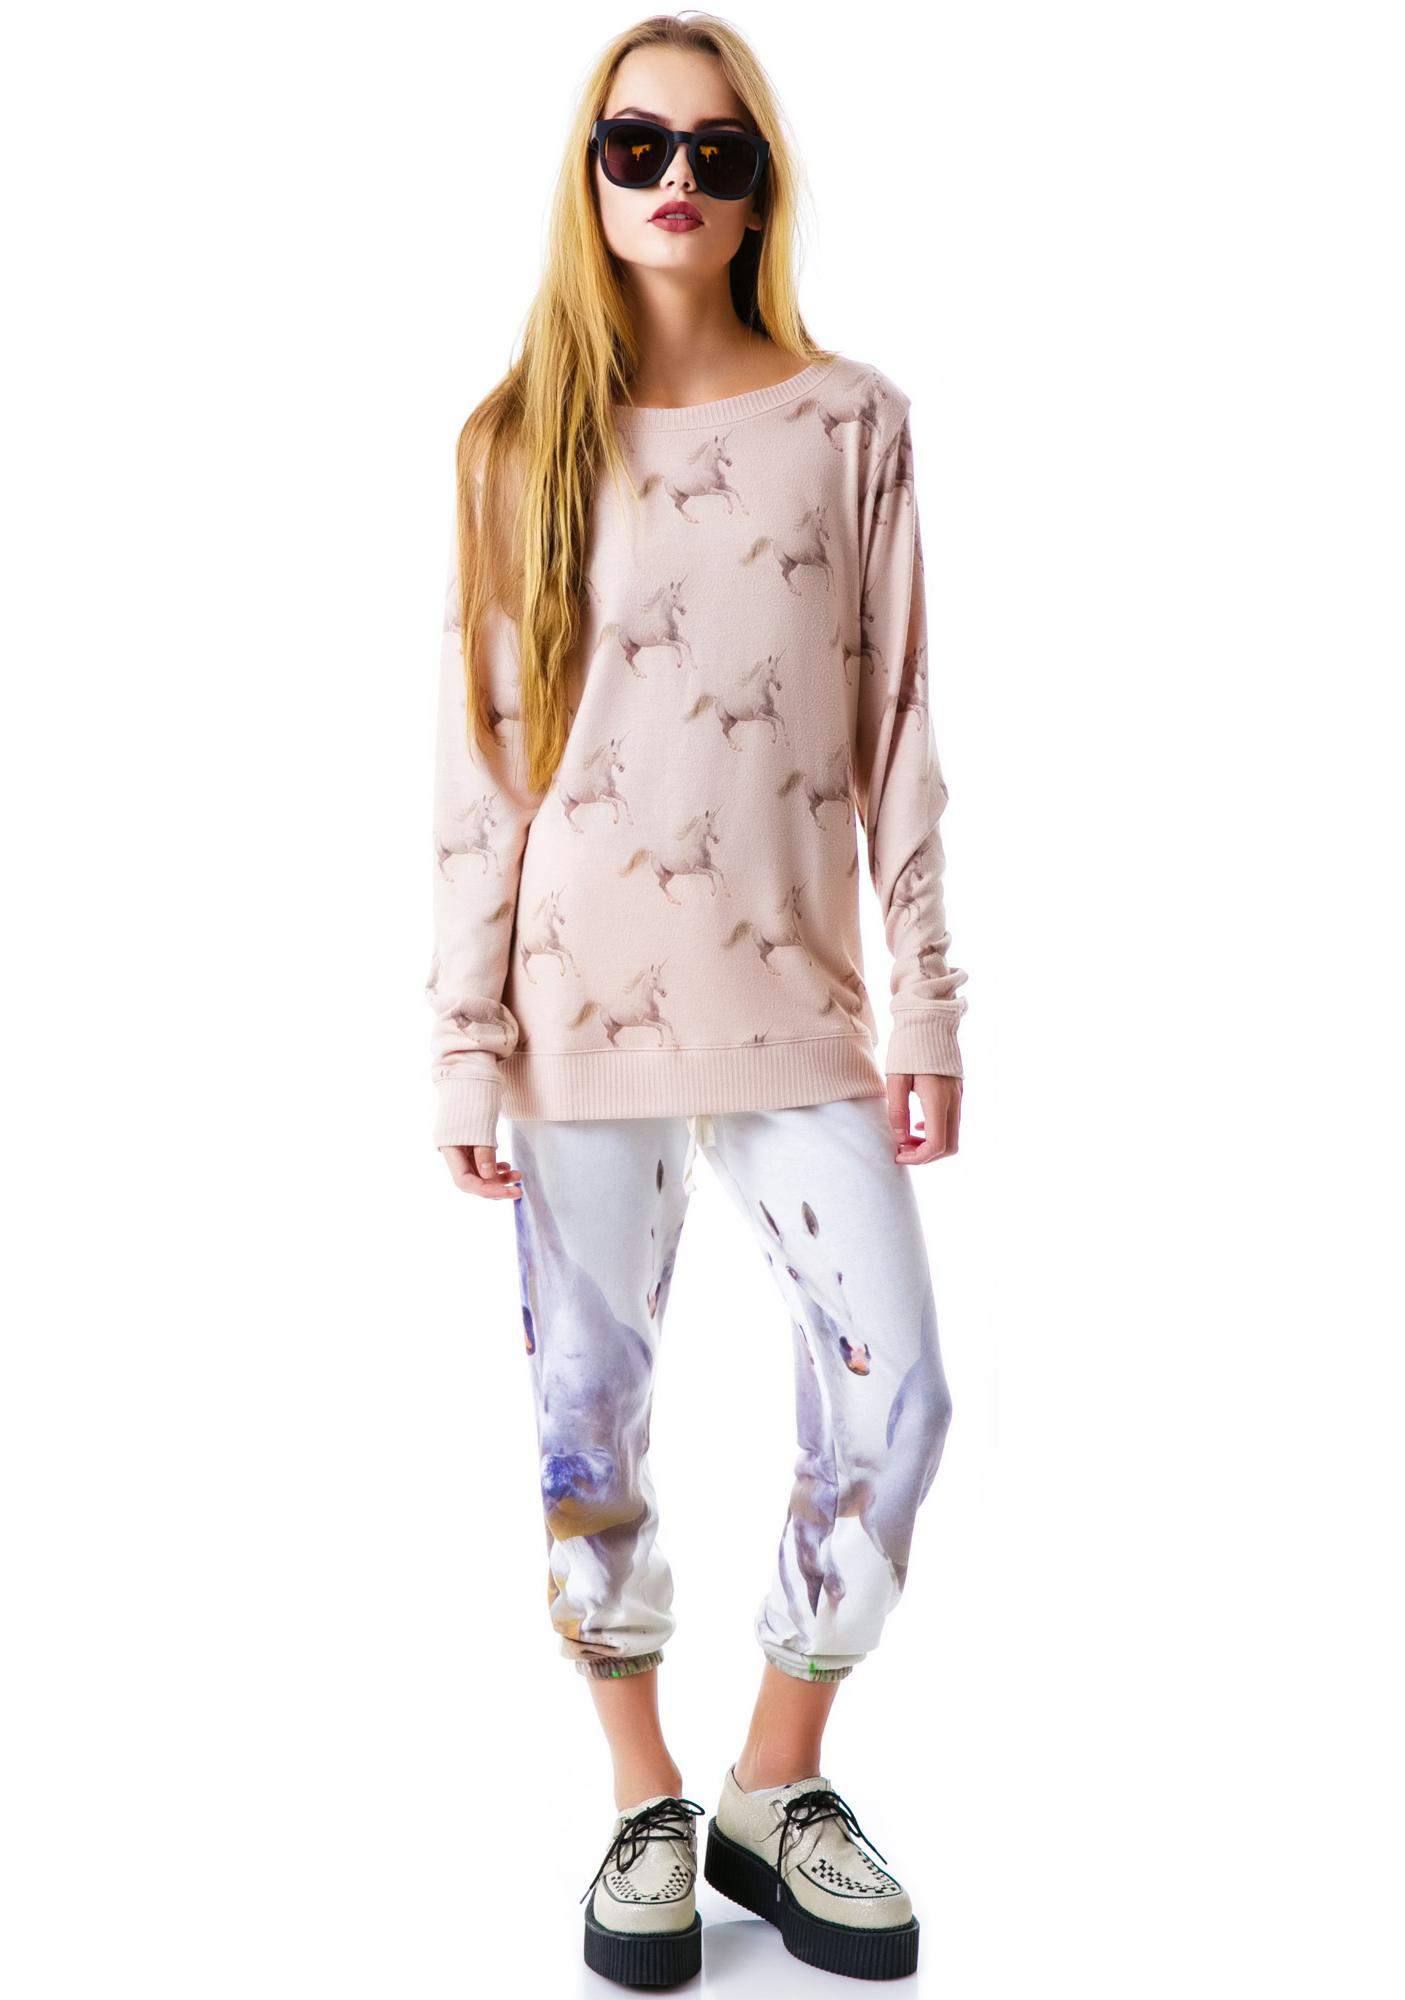 All Things Fabulous Running Unicorns Cozy Sweatshirt